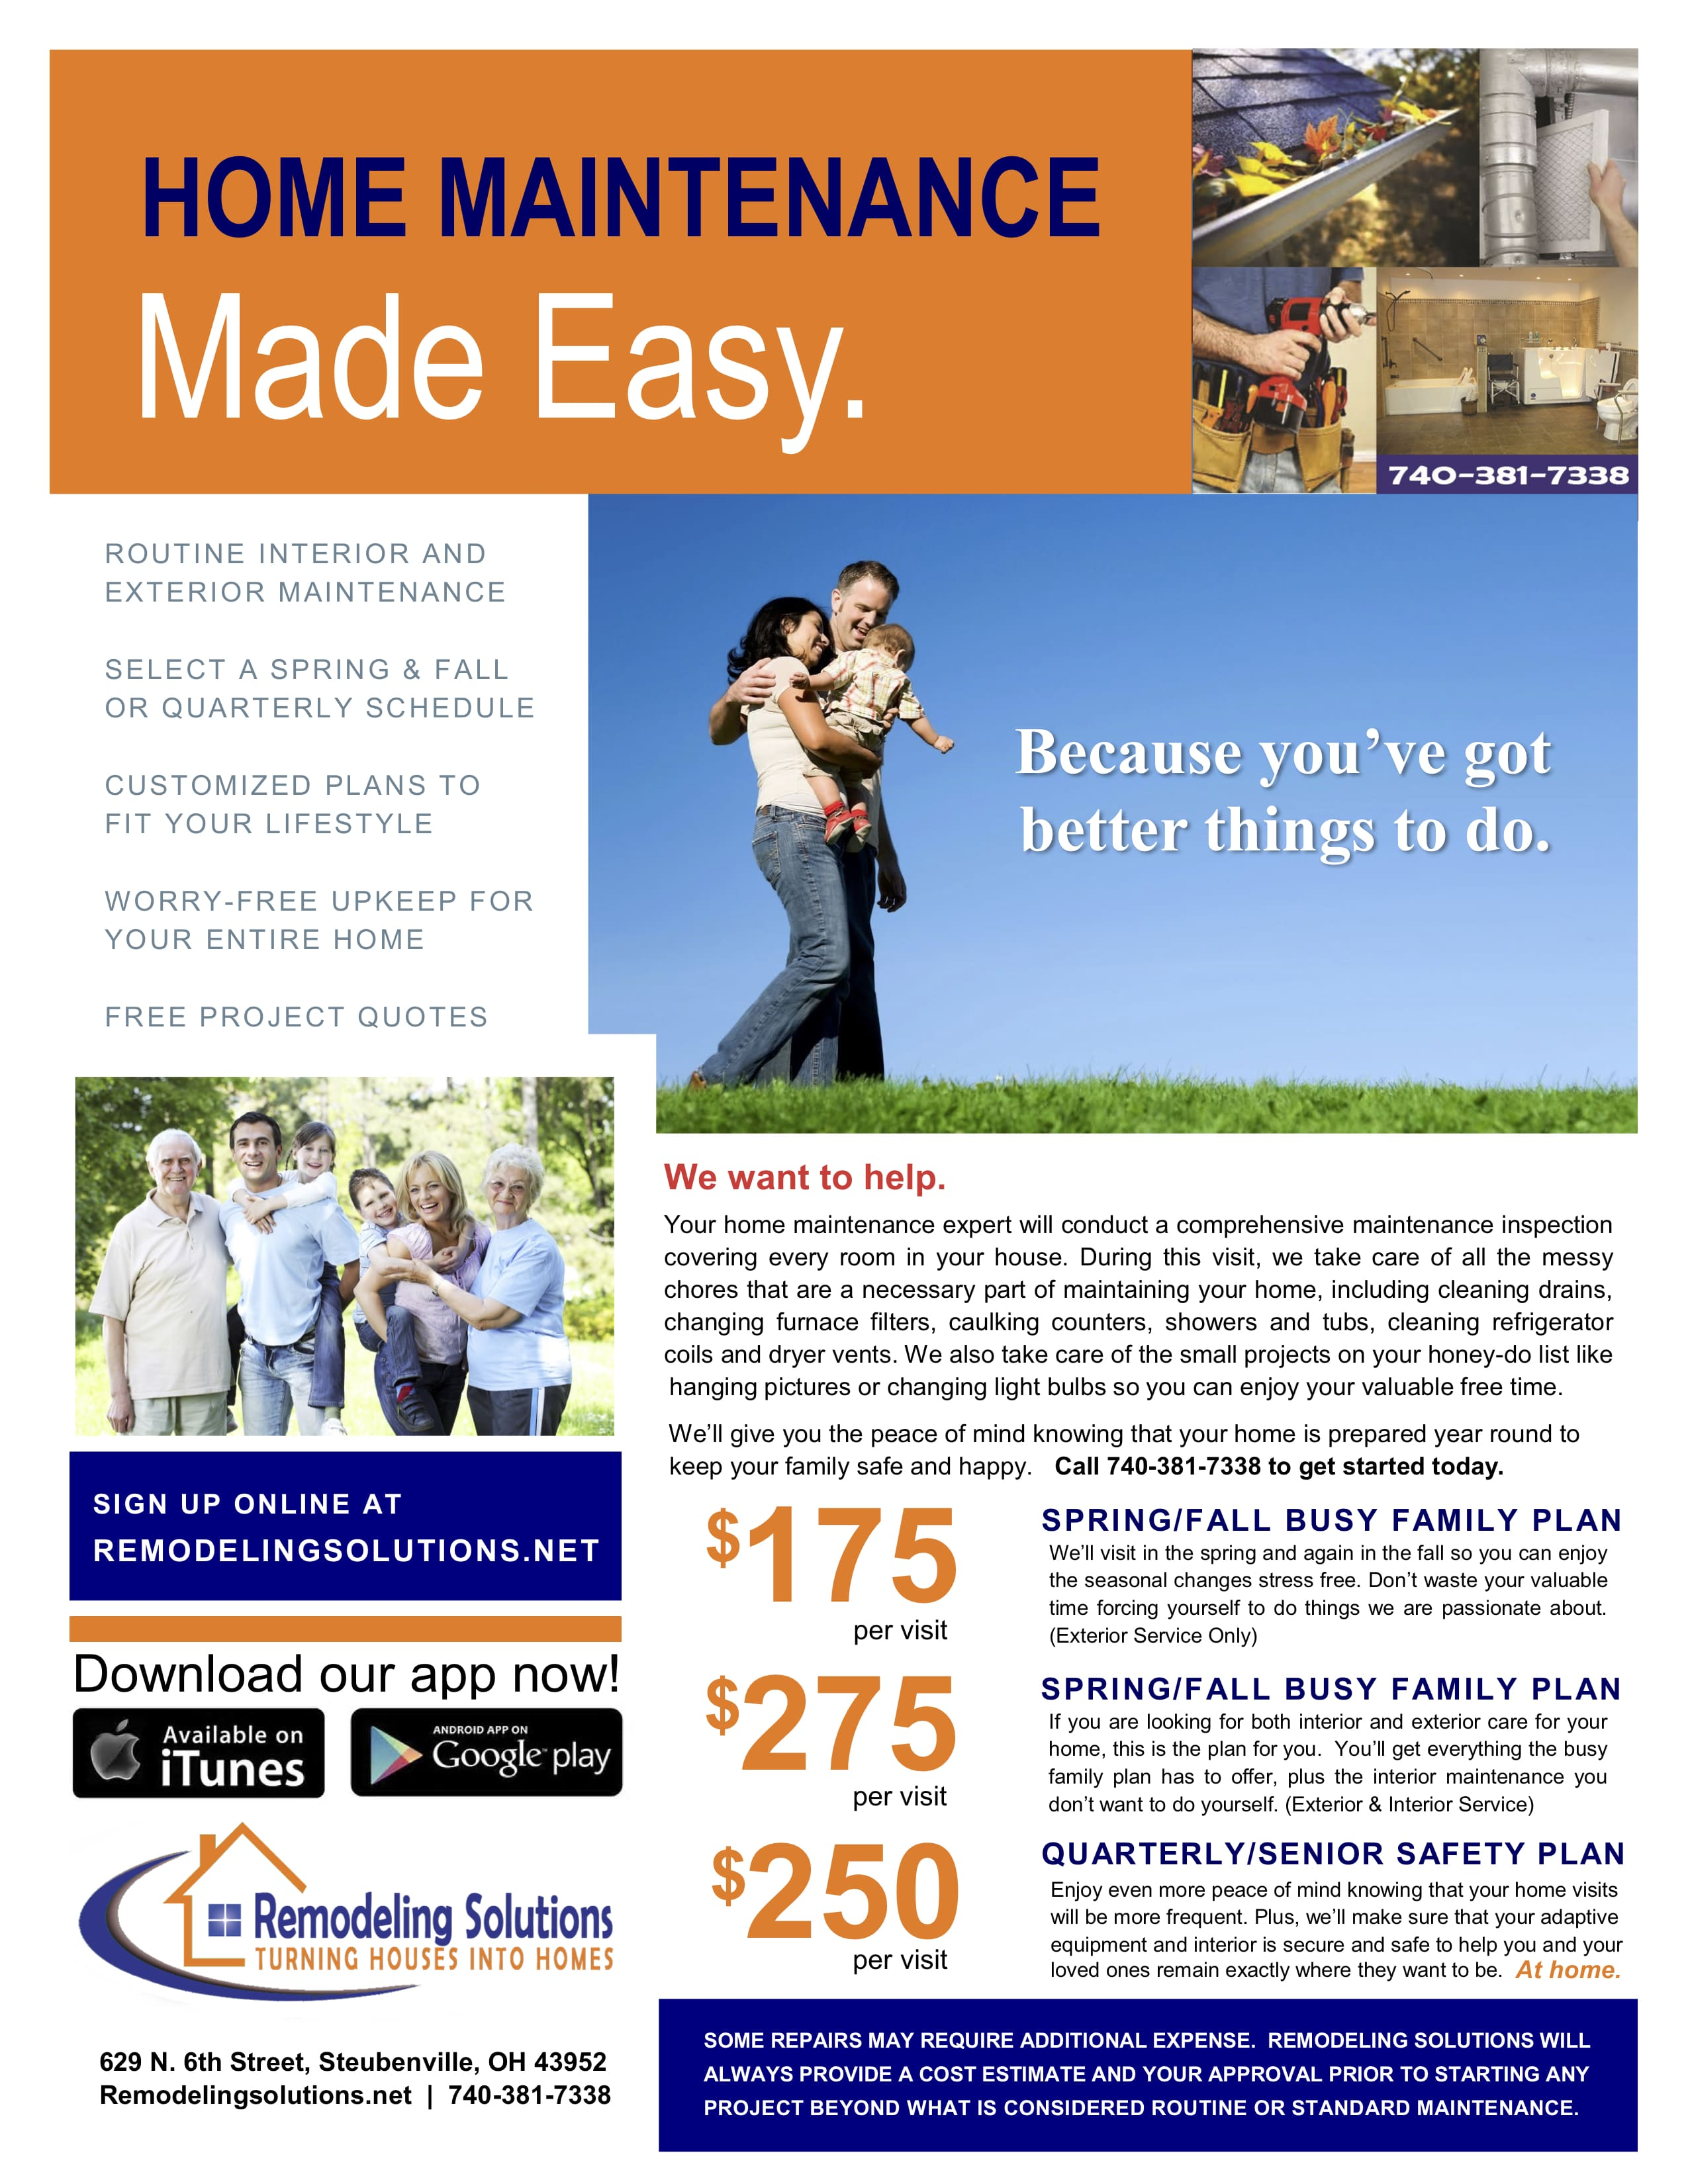 Home Maintenance, Busy Family Plan, Busy Family Plus Plan, Senior Safety, Seniors at Home